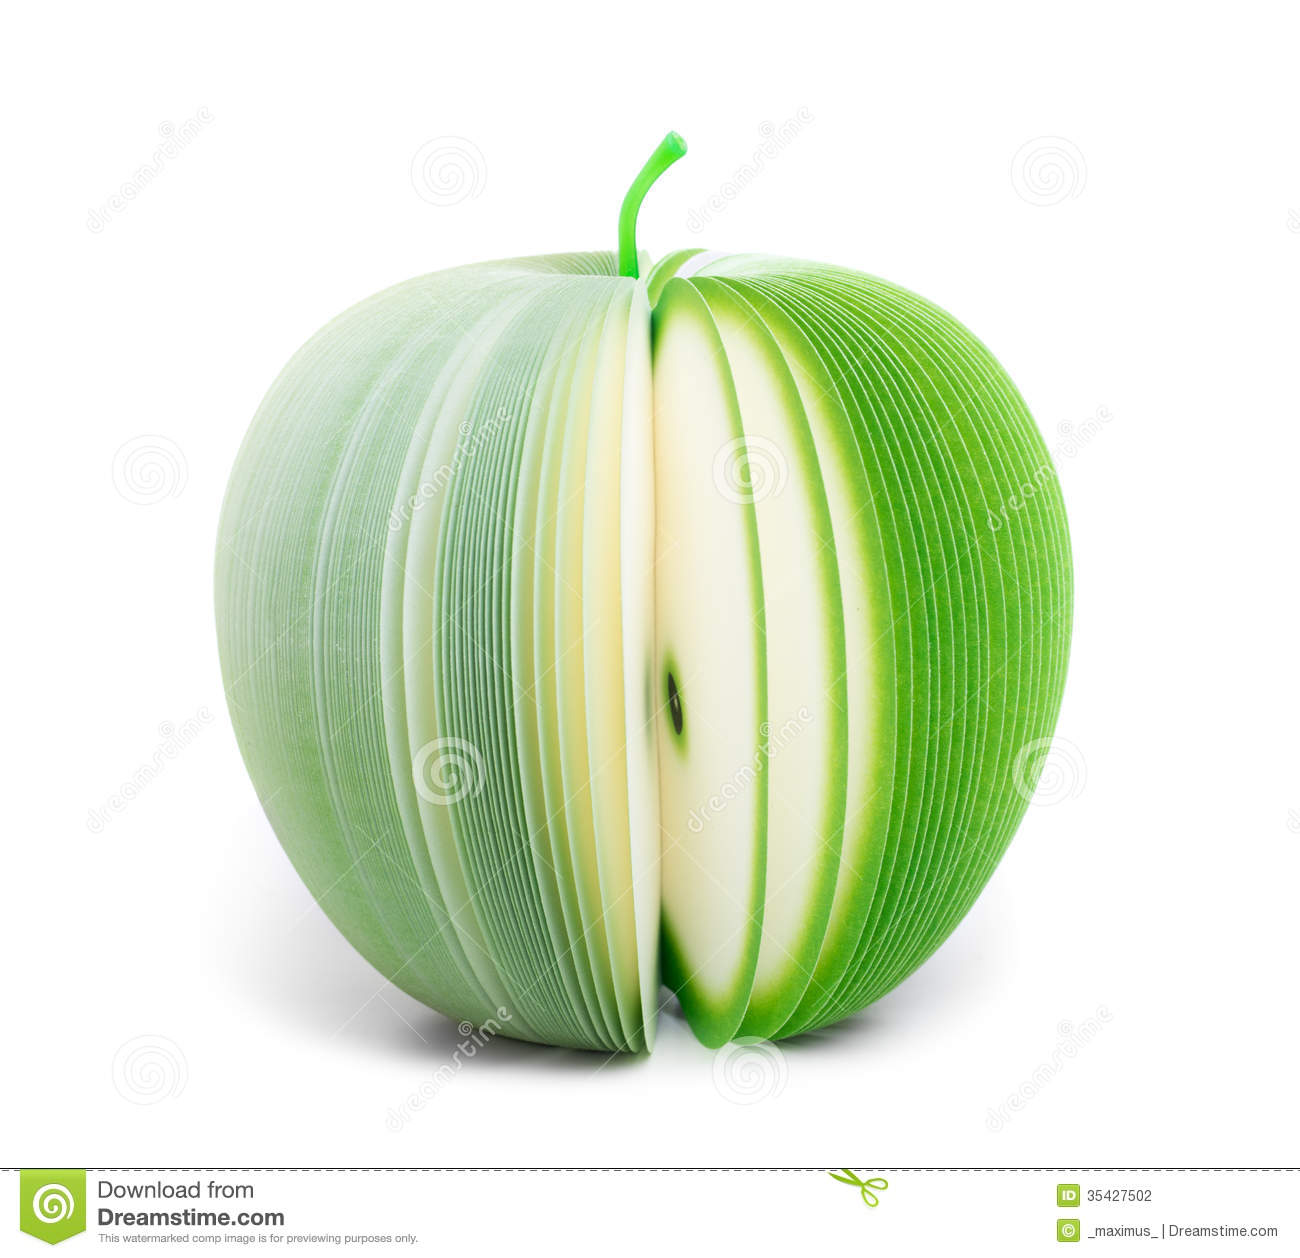 essay about fruit apple My favorite fruit essaysthe fruit i am reporting on is the apple the apple is classified as a pome pomes are fruits that have a core, and belong to the rose family.